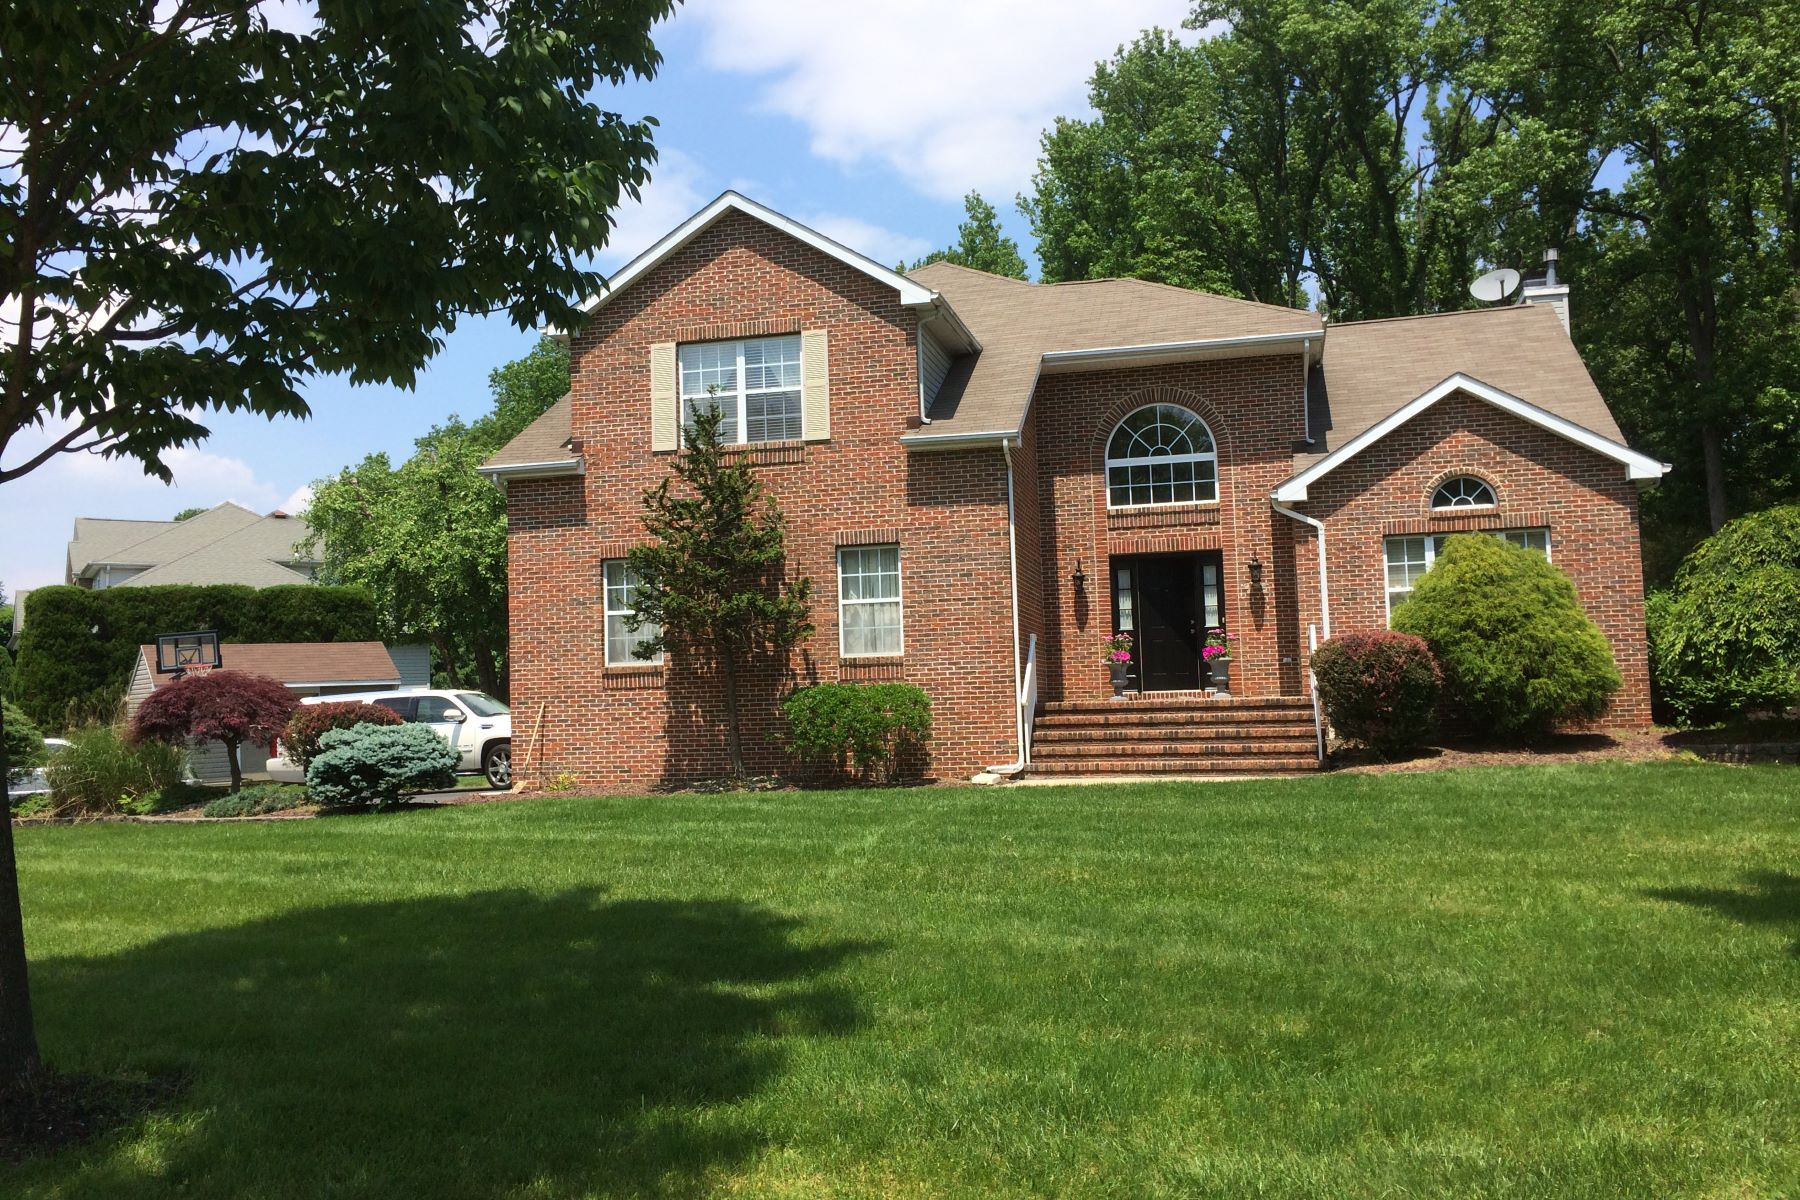 Additional photo for property listing at Striking Brick Front Colonial 23 Arnold Lane, Robbinsville, New Jersey 08691 United States